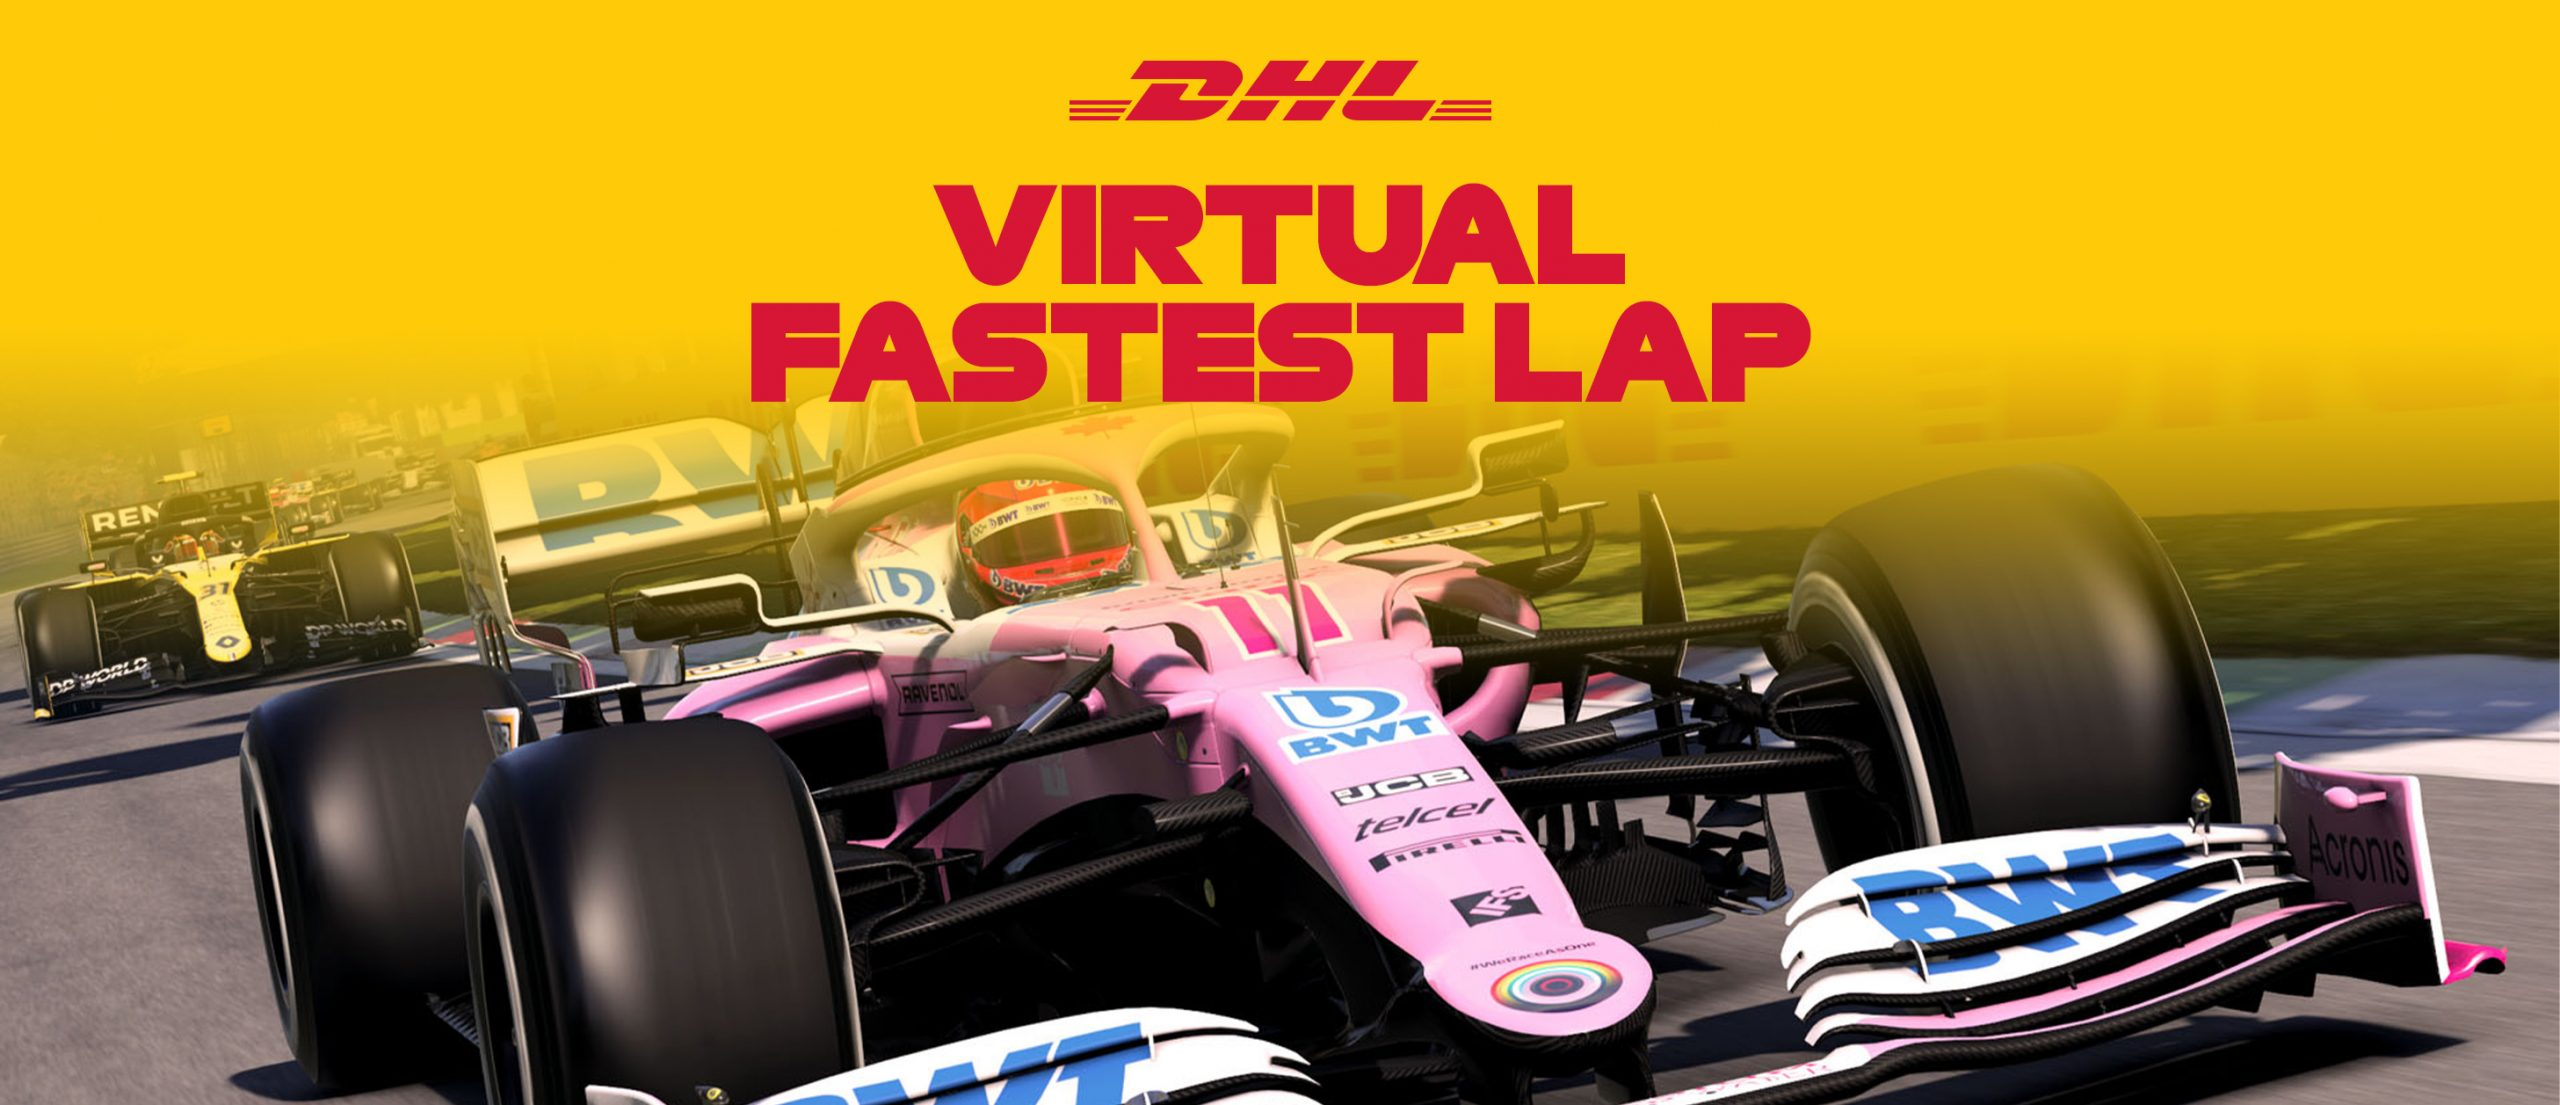 DHL Virtual Fastest Lap Competition Now Open!